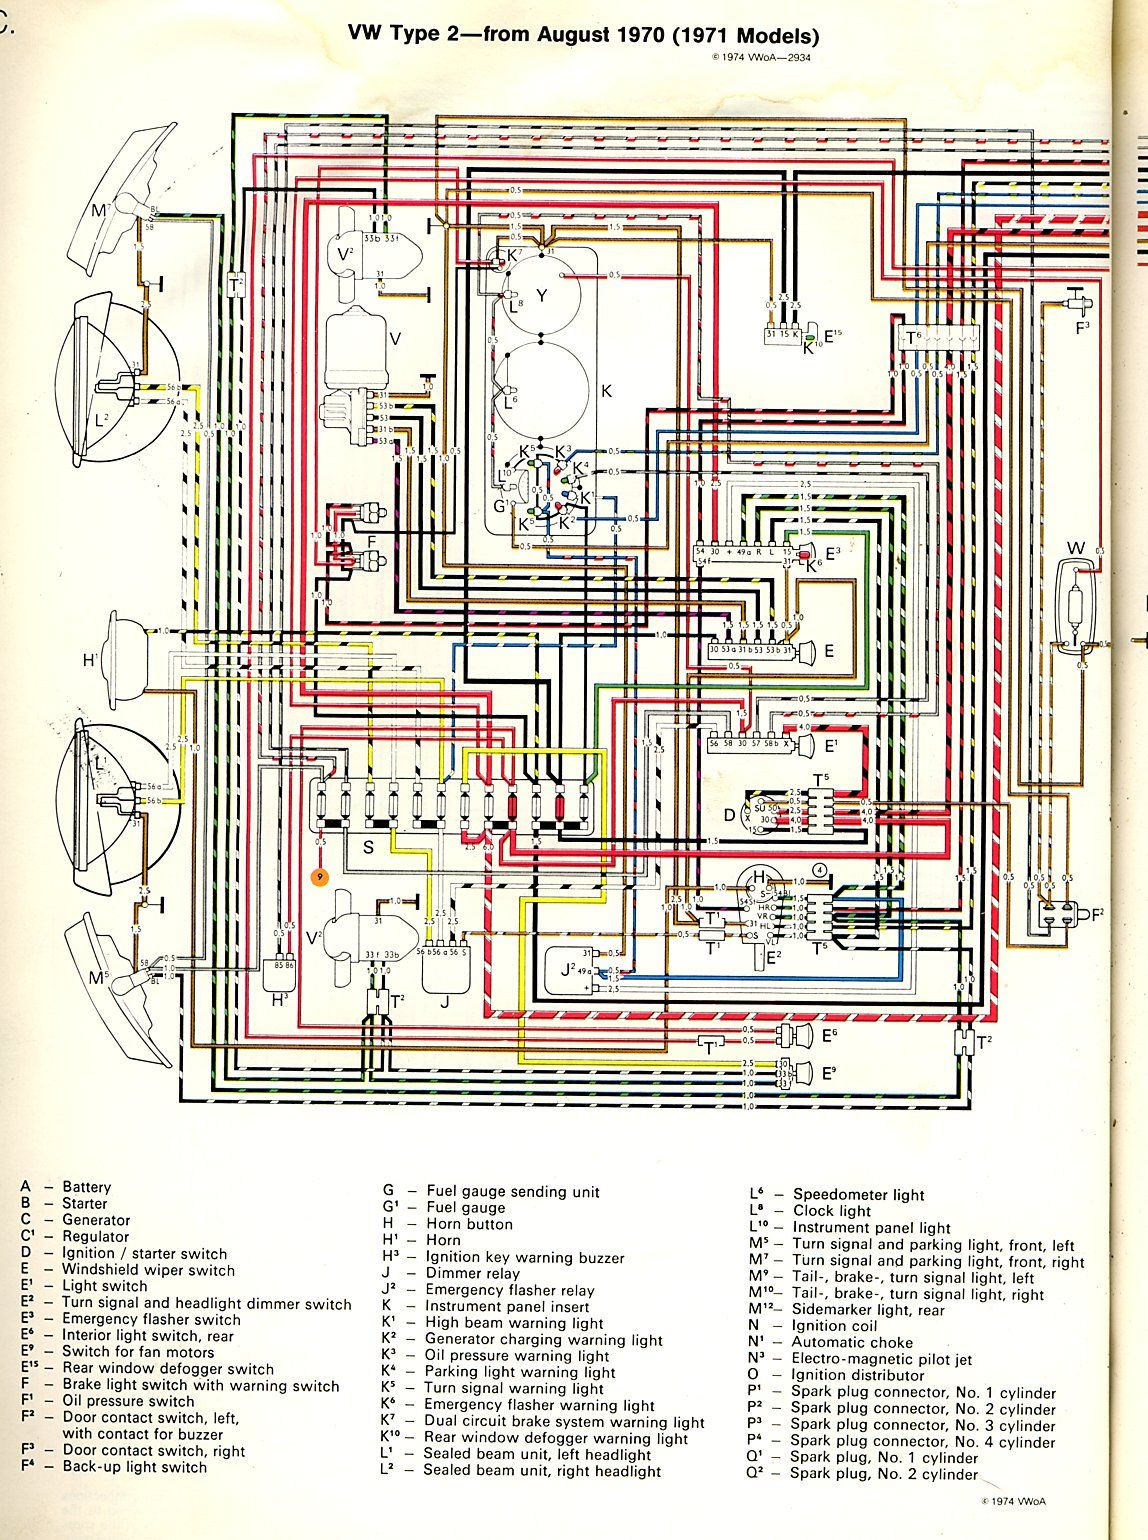 1978 Vw Bus Wiring Diagram Structure Of Stomata With Wire 1979 Van 7mi Awosurk De Library Rh 45 Ggve Nl